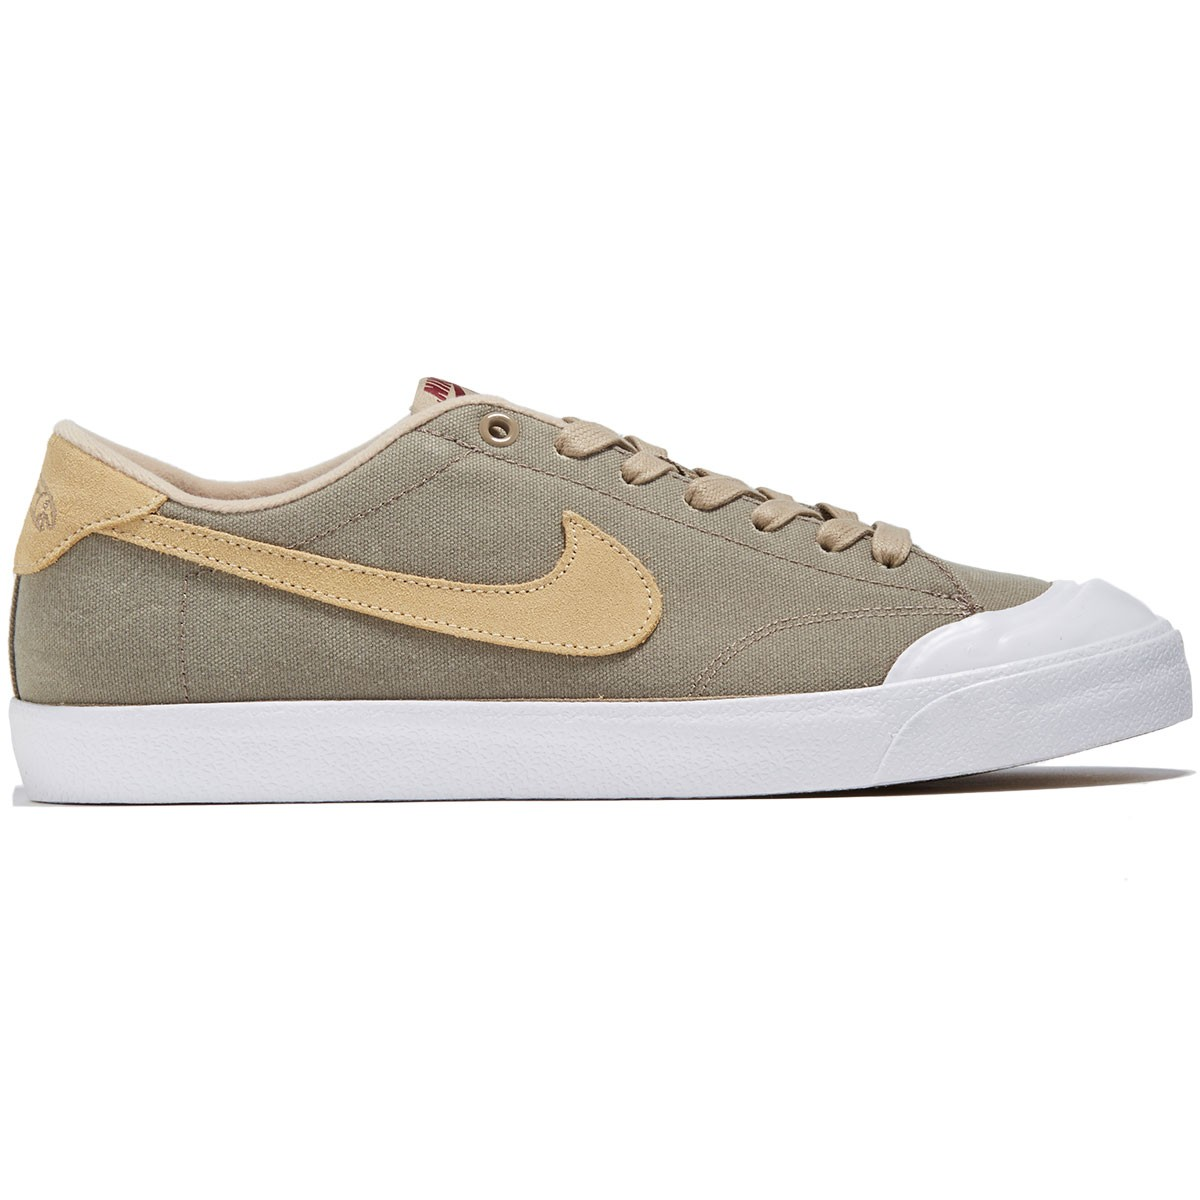 darse cuenta Lima libertad  Nike SB Zoom All Court CK Shoes